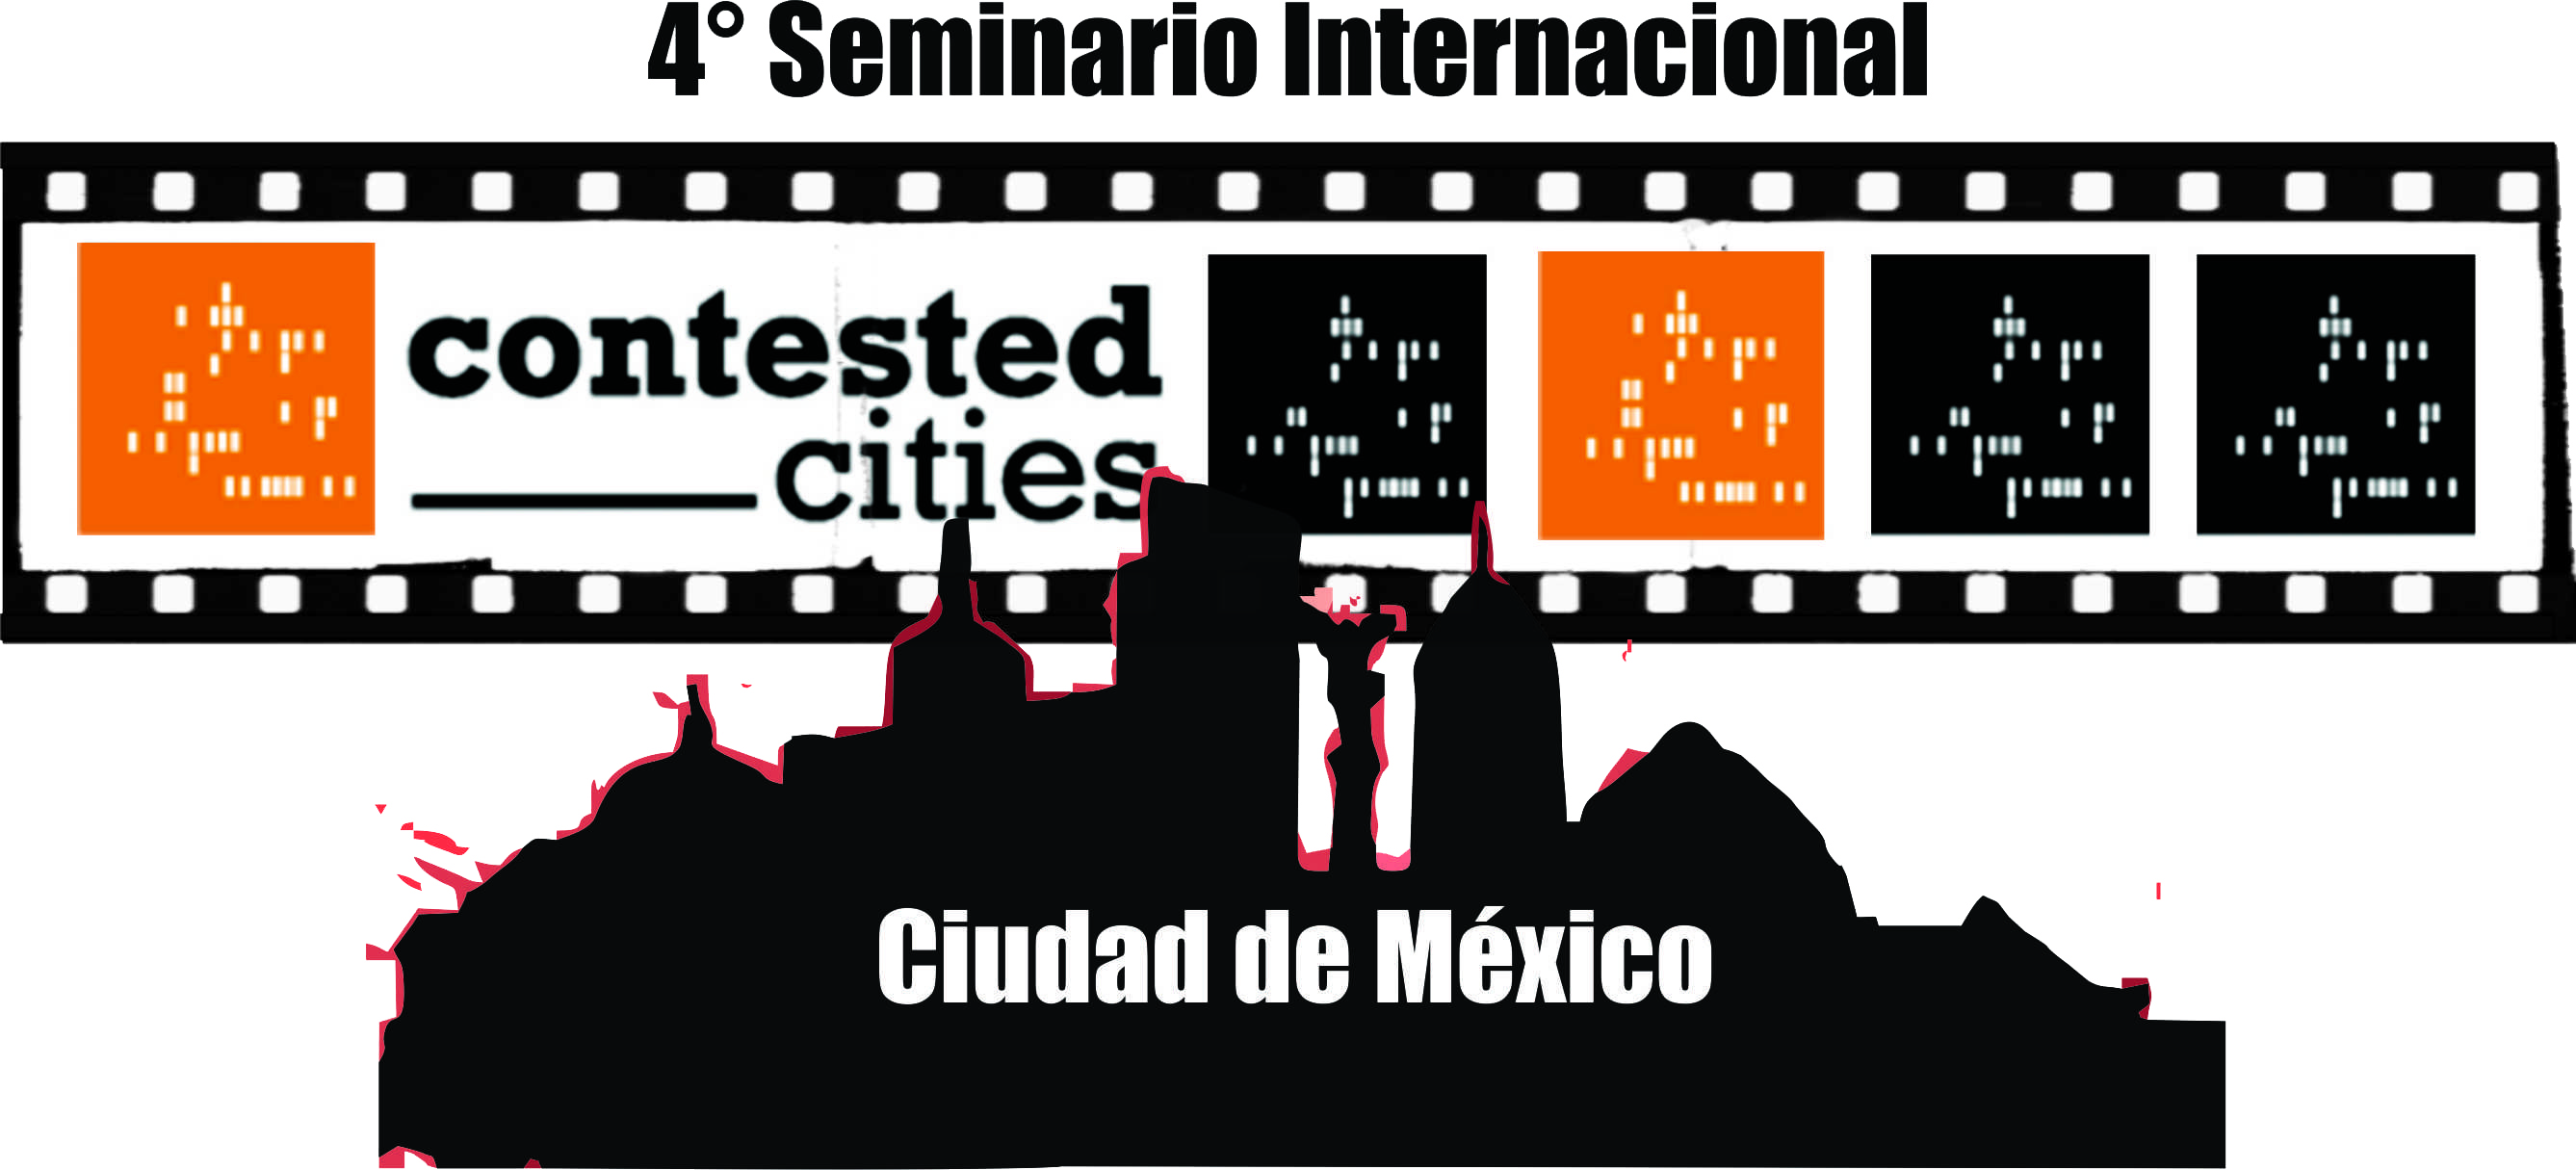 4o Seminario Red Internacional Contested Cities. Exhibición de Videos Sesión II. Centro Cultural Universitario Tlatelolco, Ciudad de México 17 abril 2015